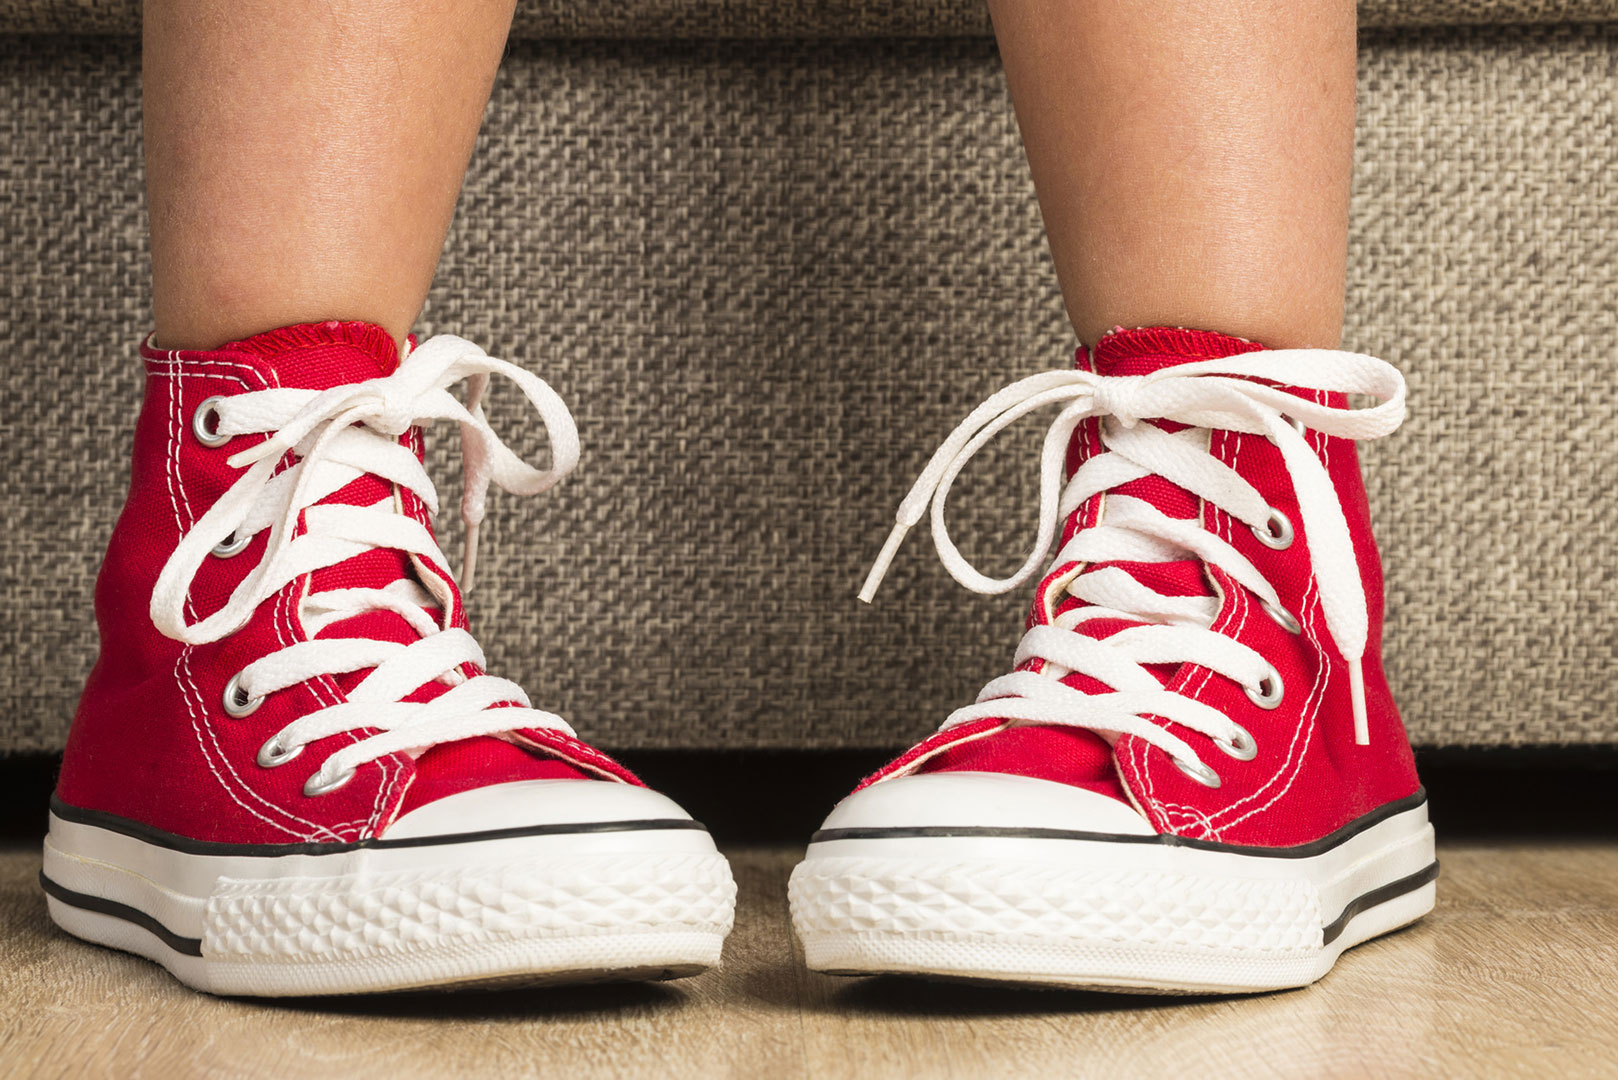 Keep Your Shoe Laces Tied For Kids